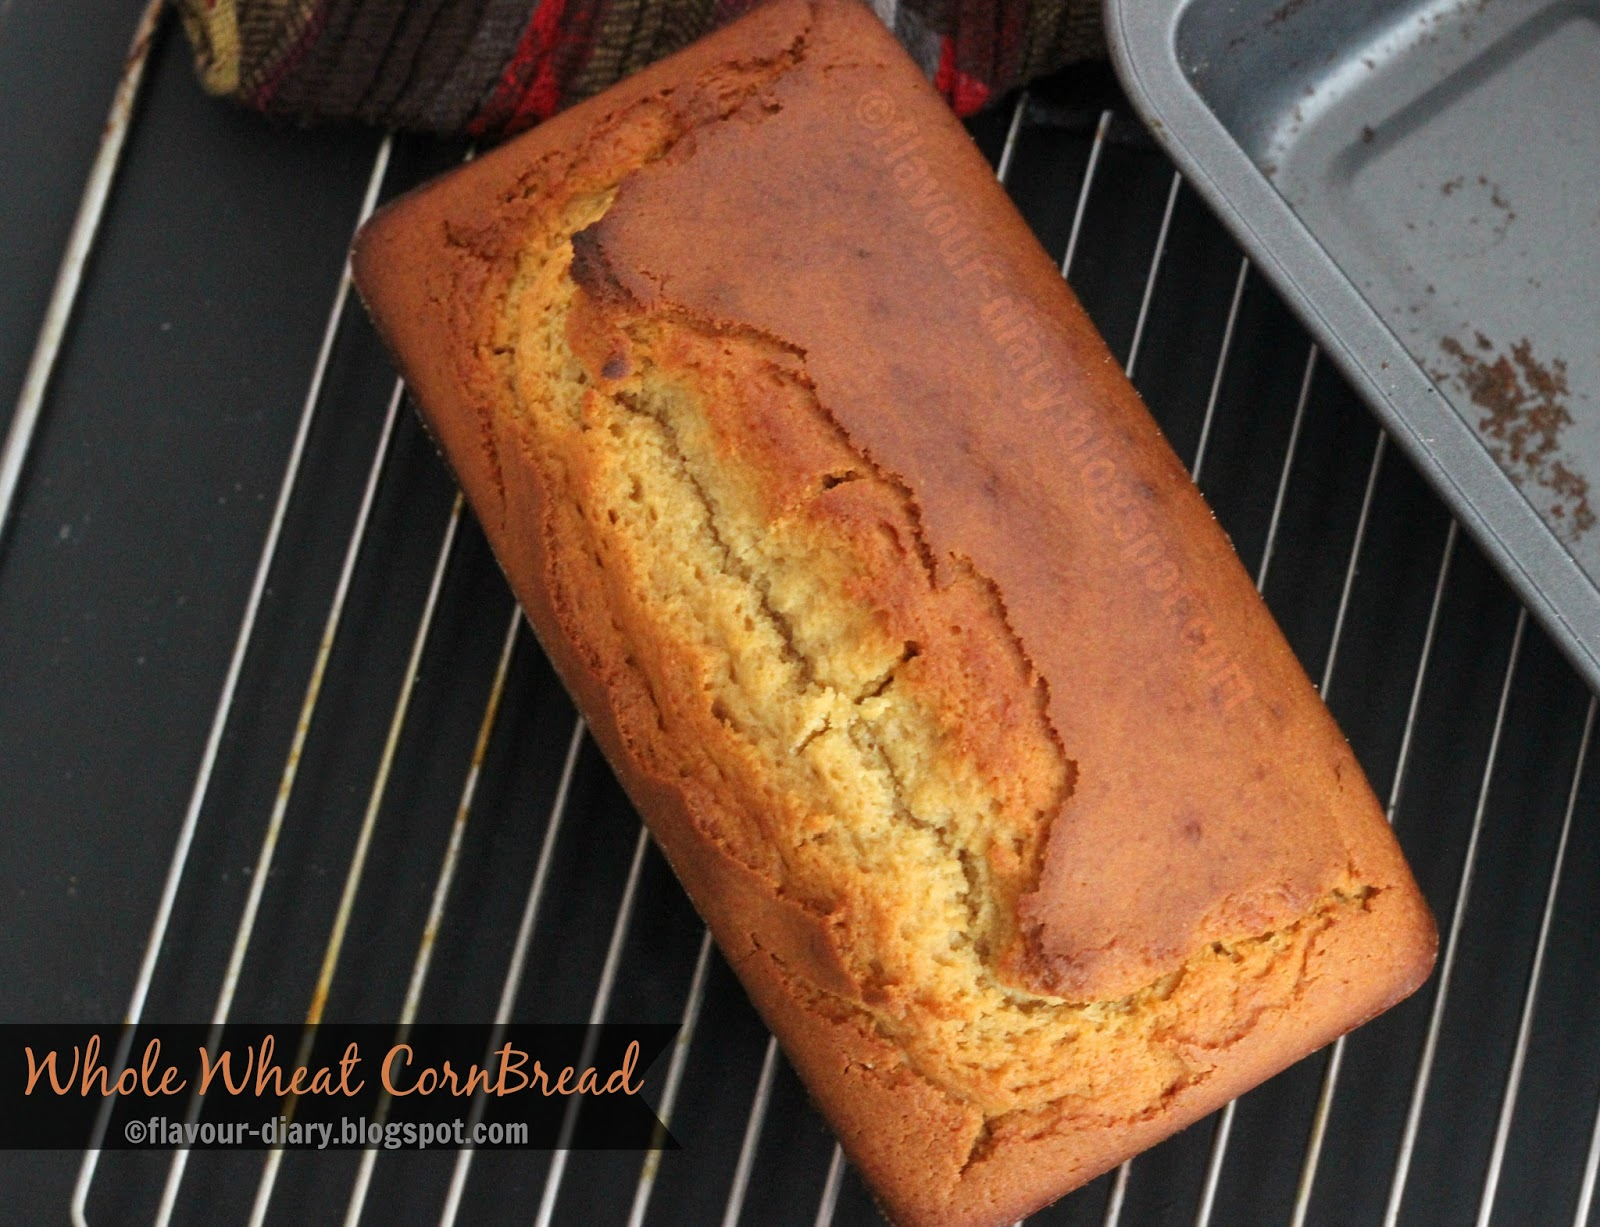 Northern Style Cornbread recipe